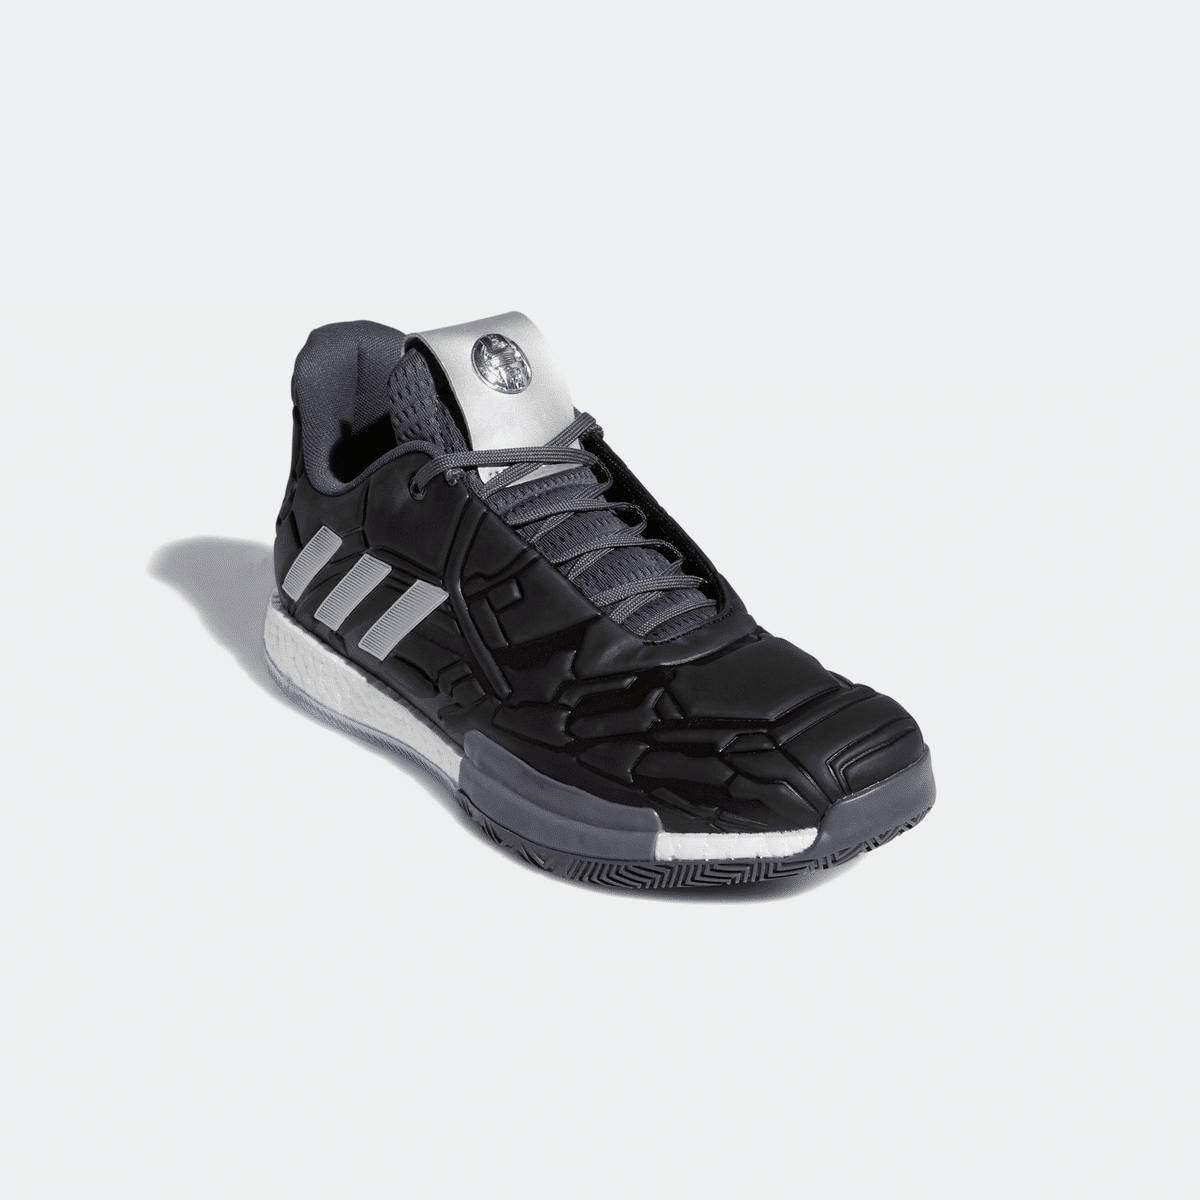 A New Marvel x adidas Harden Vol. 3 Colorway has Been Spotted